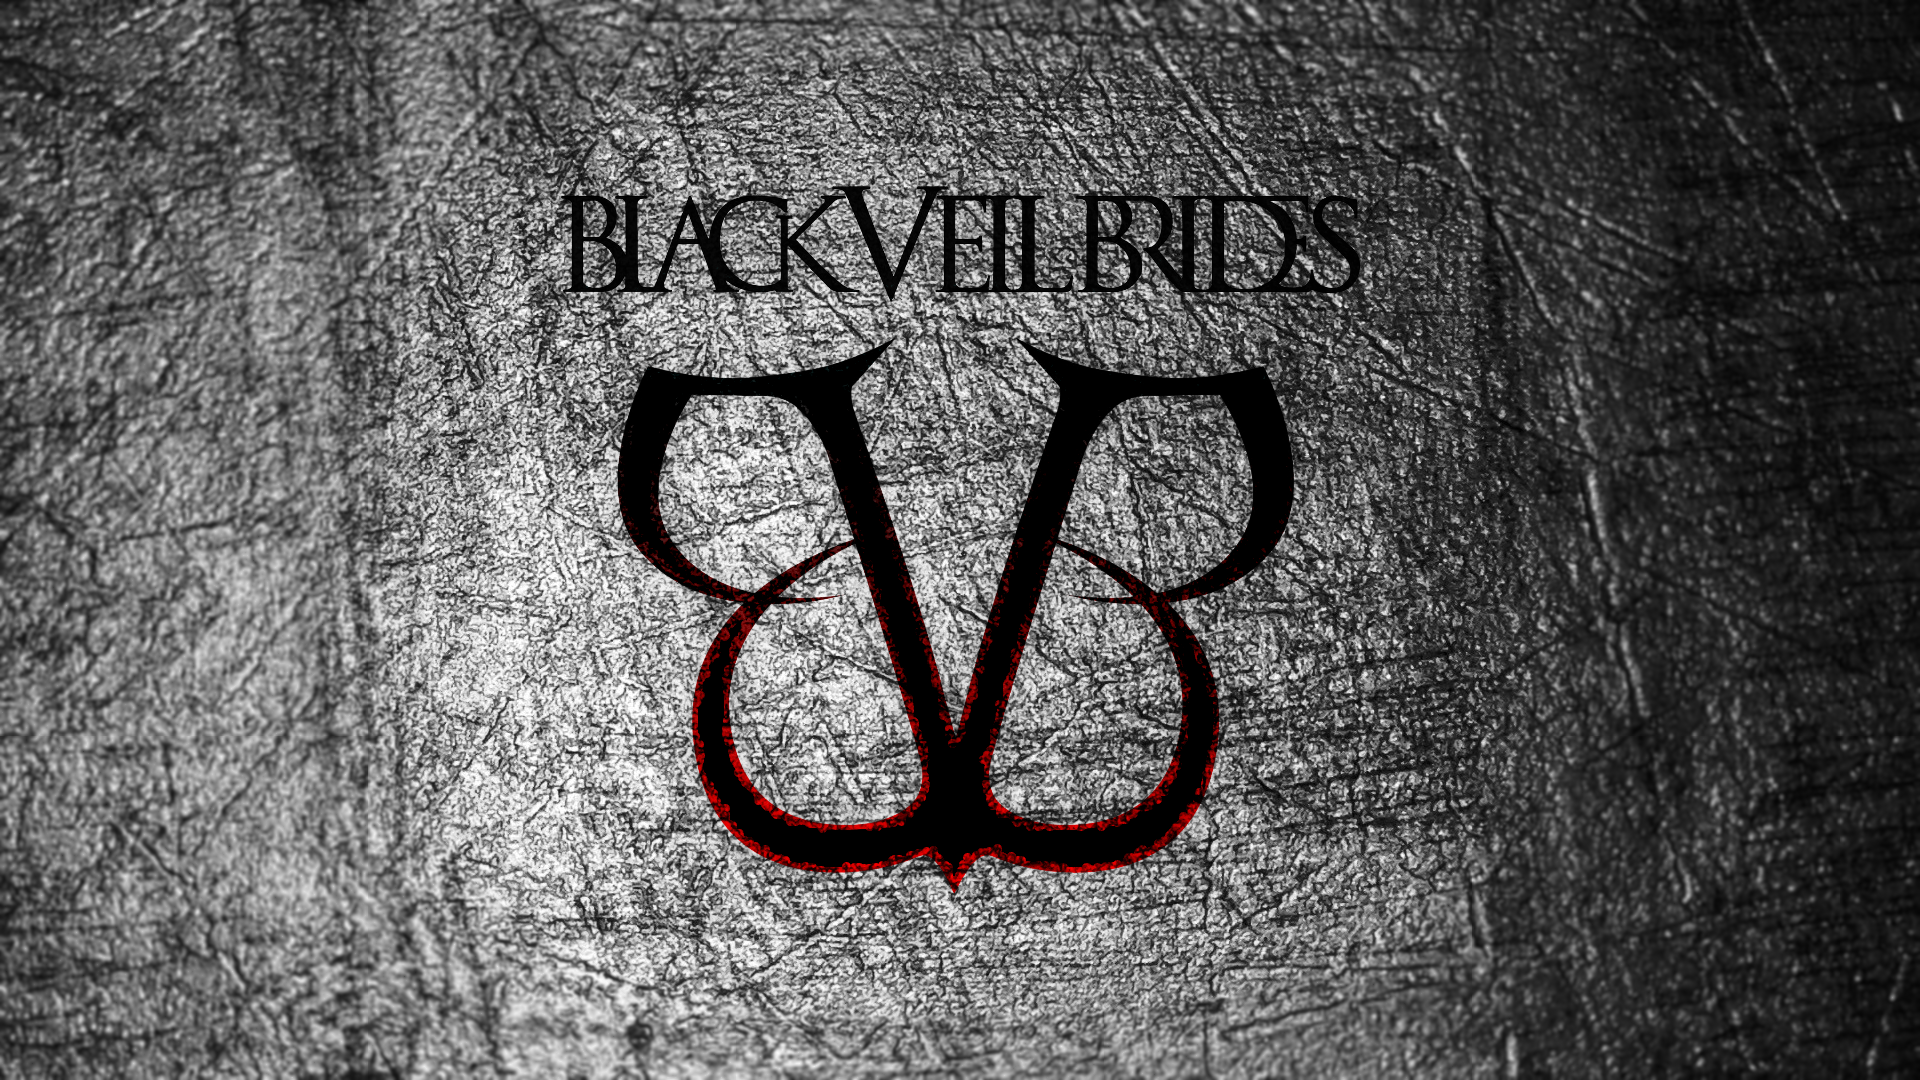 Black Veil Brides Wallpapers - WallpaperSafari